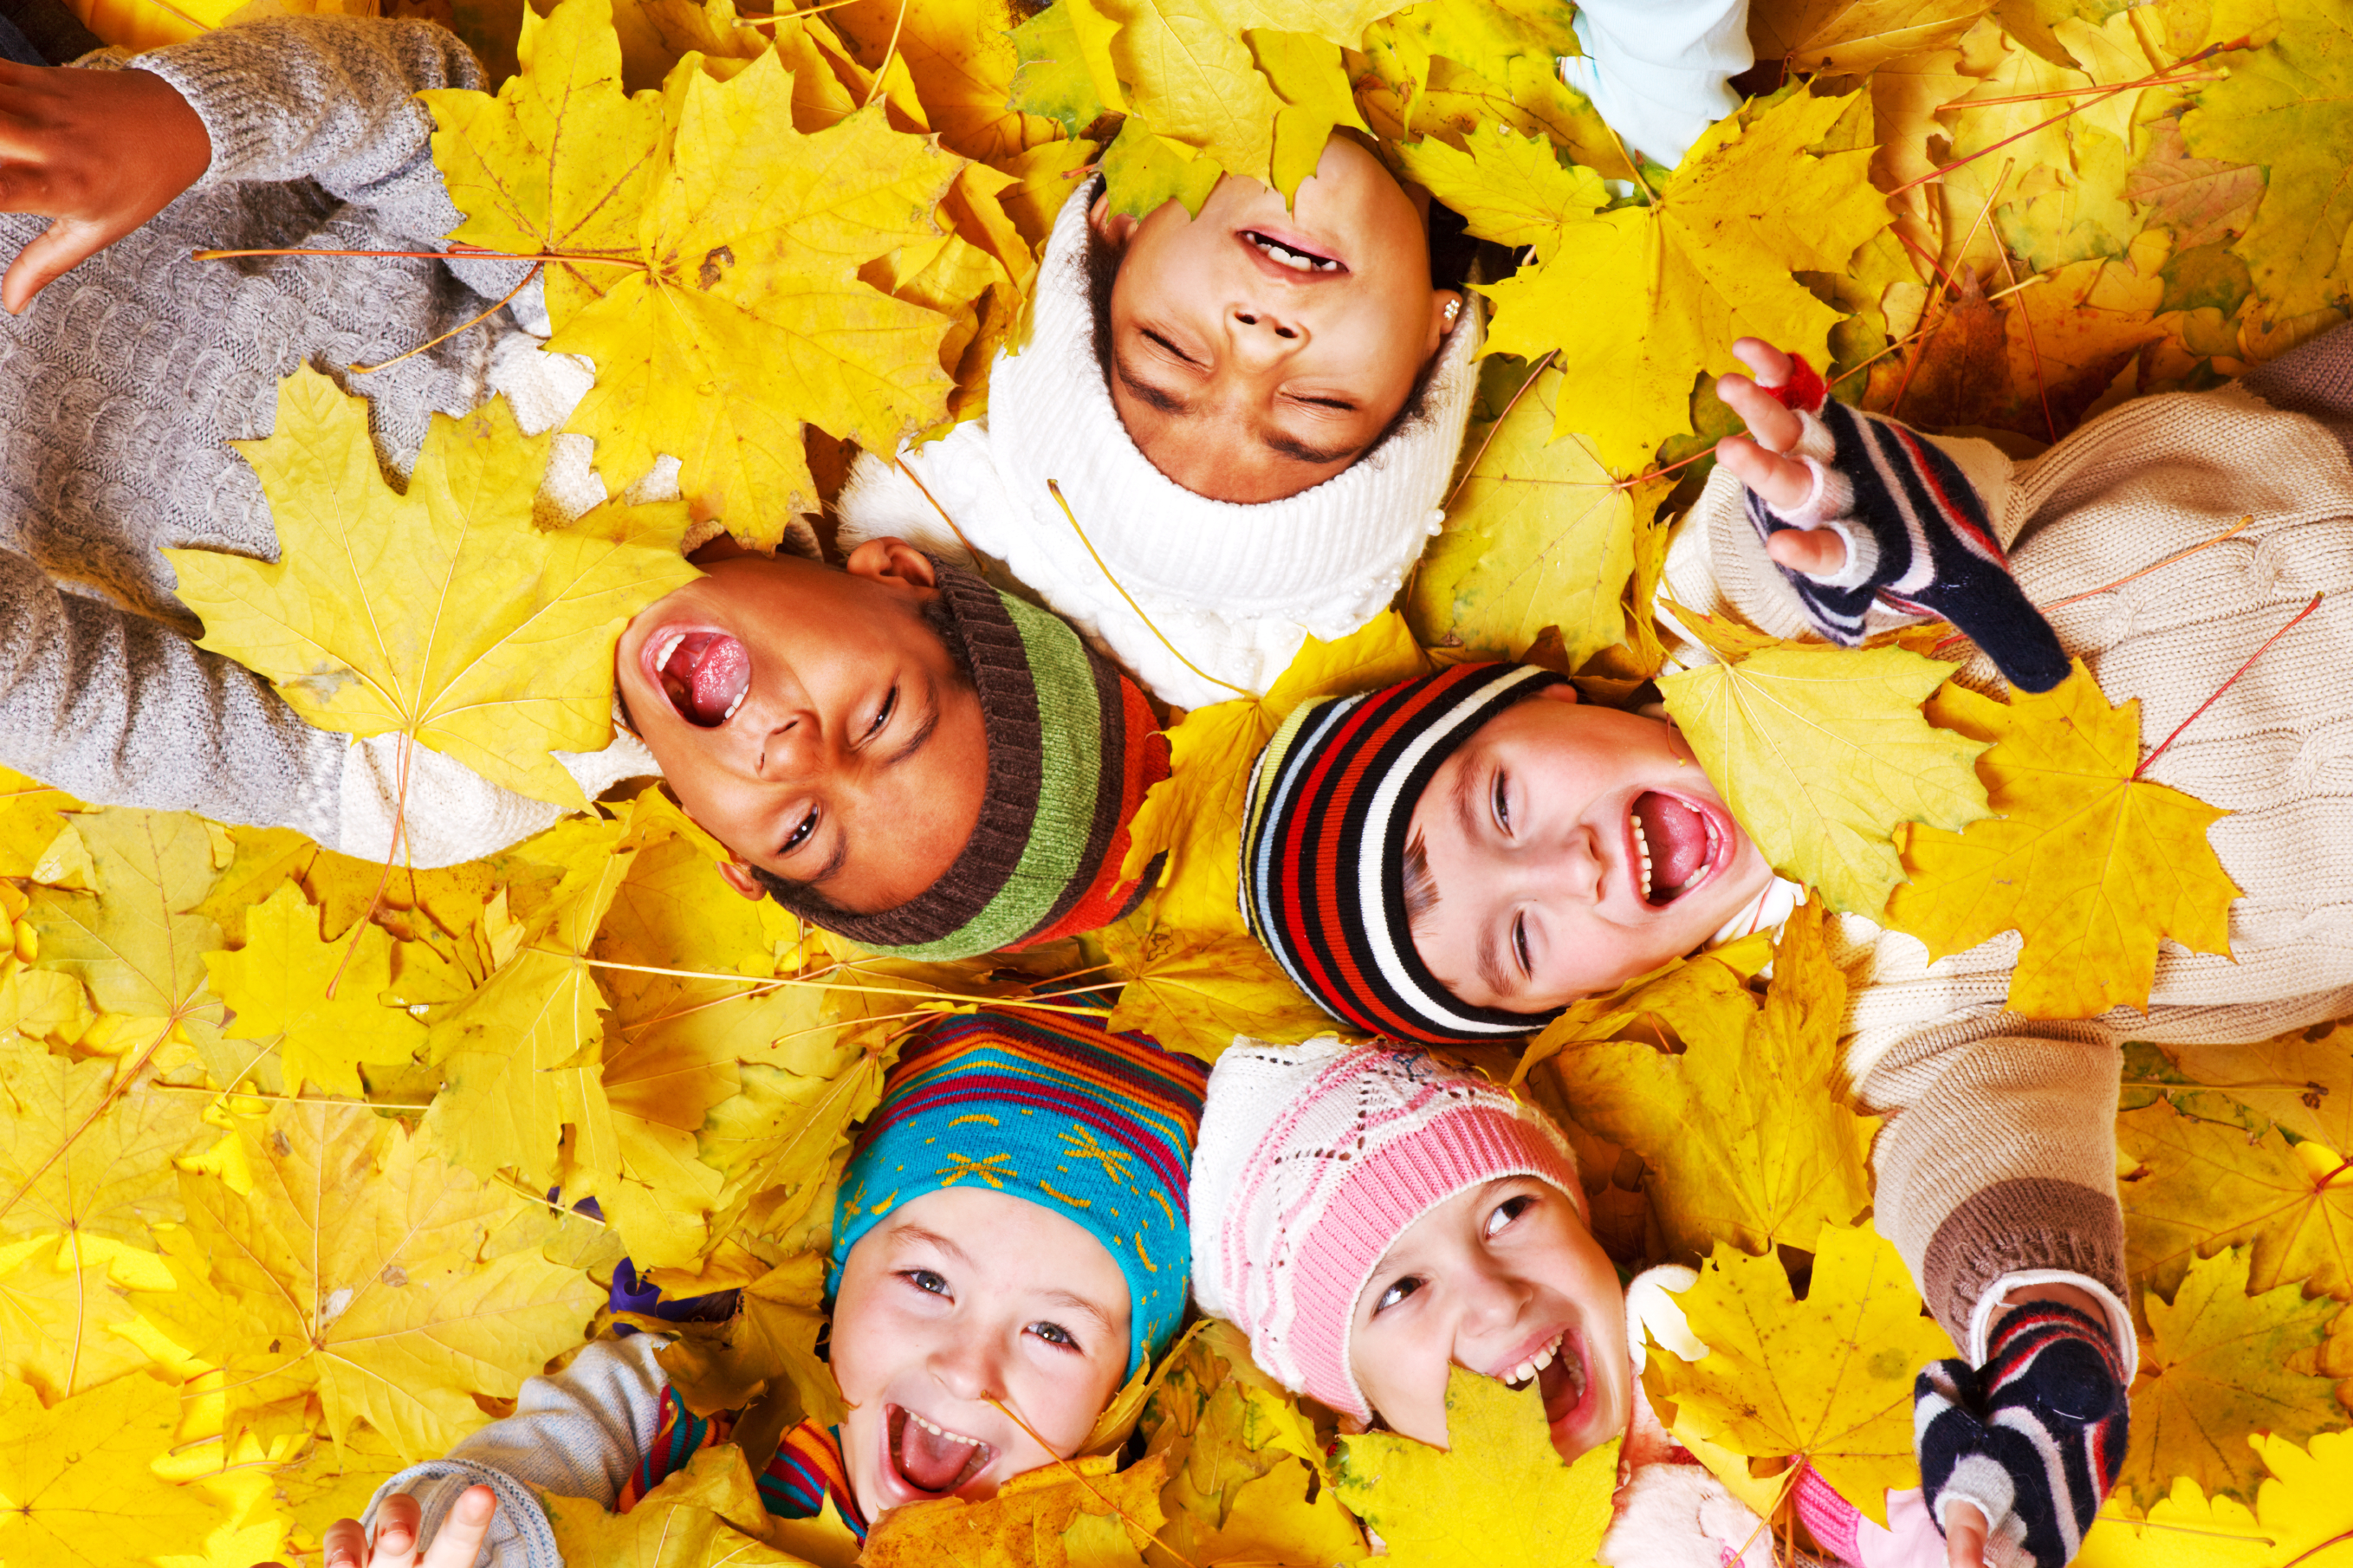 Kids having fun in a pile of leaves. Omaha Dentistry post on autumn safety for dental health.